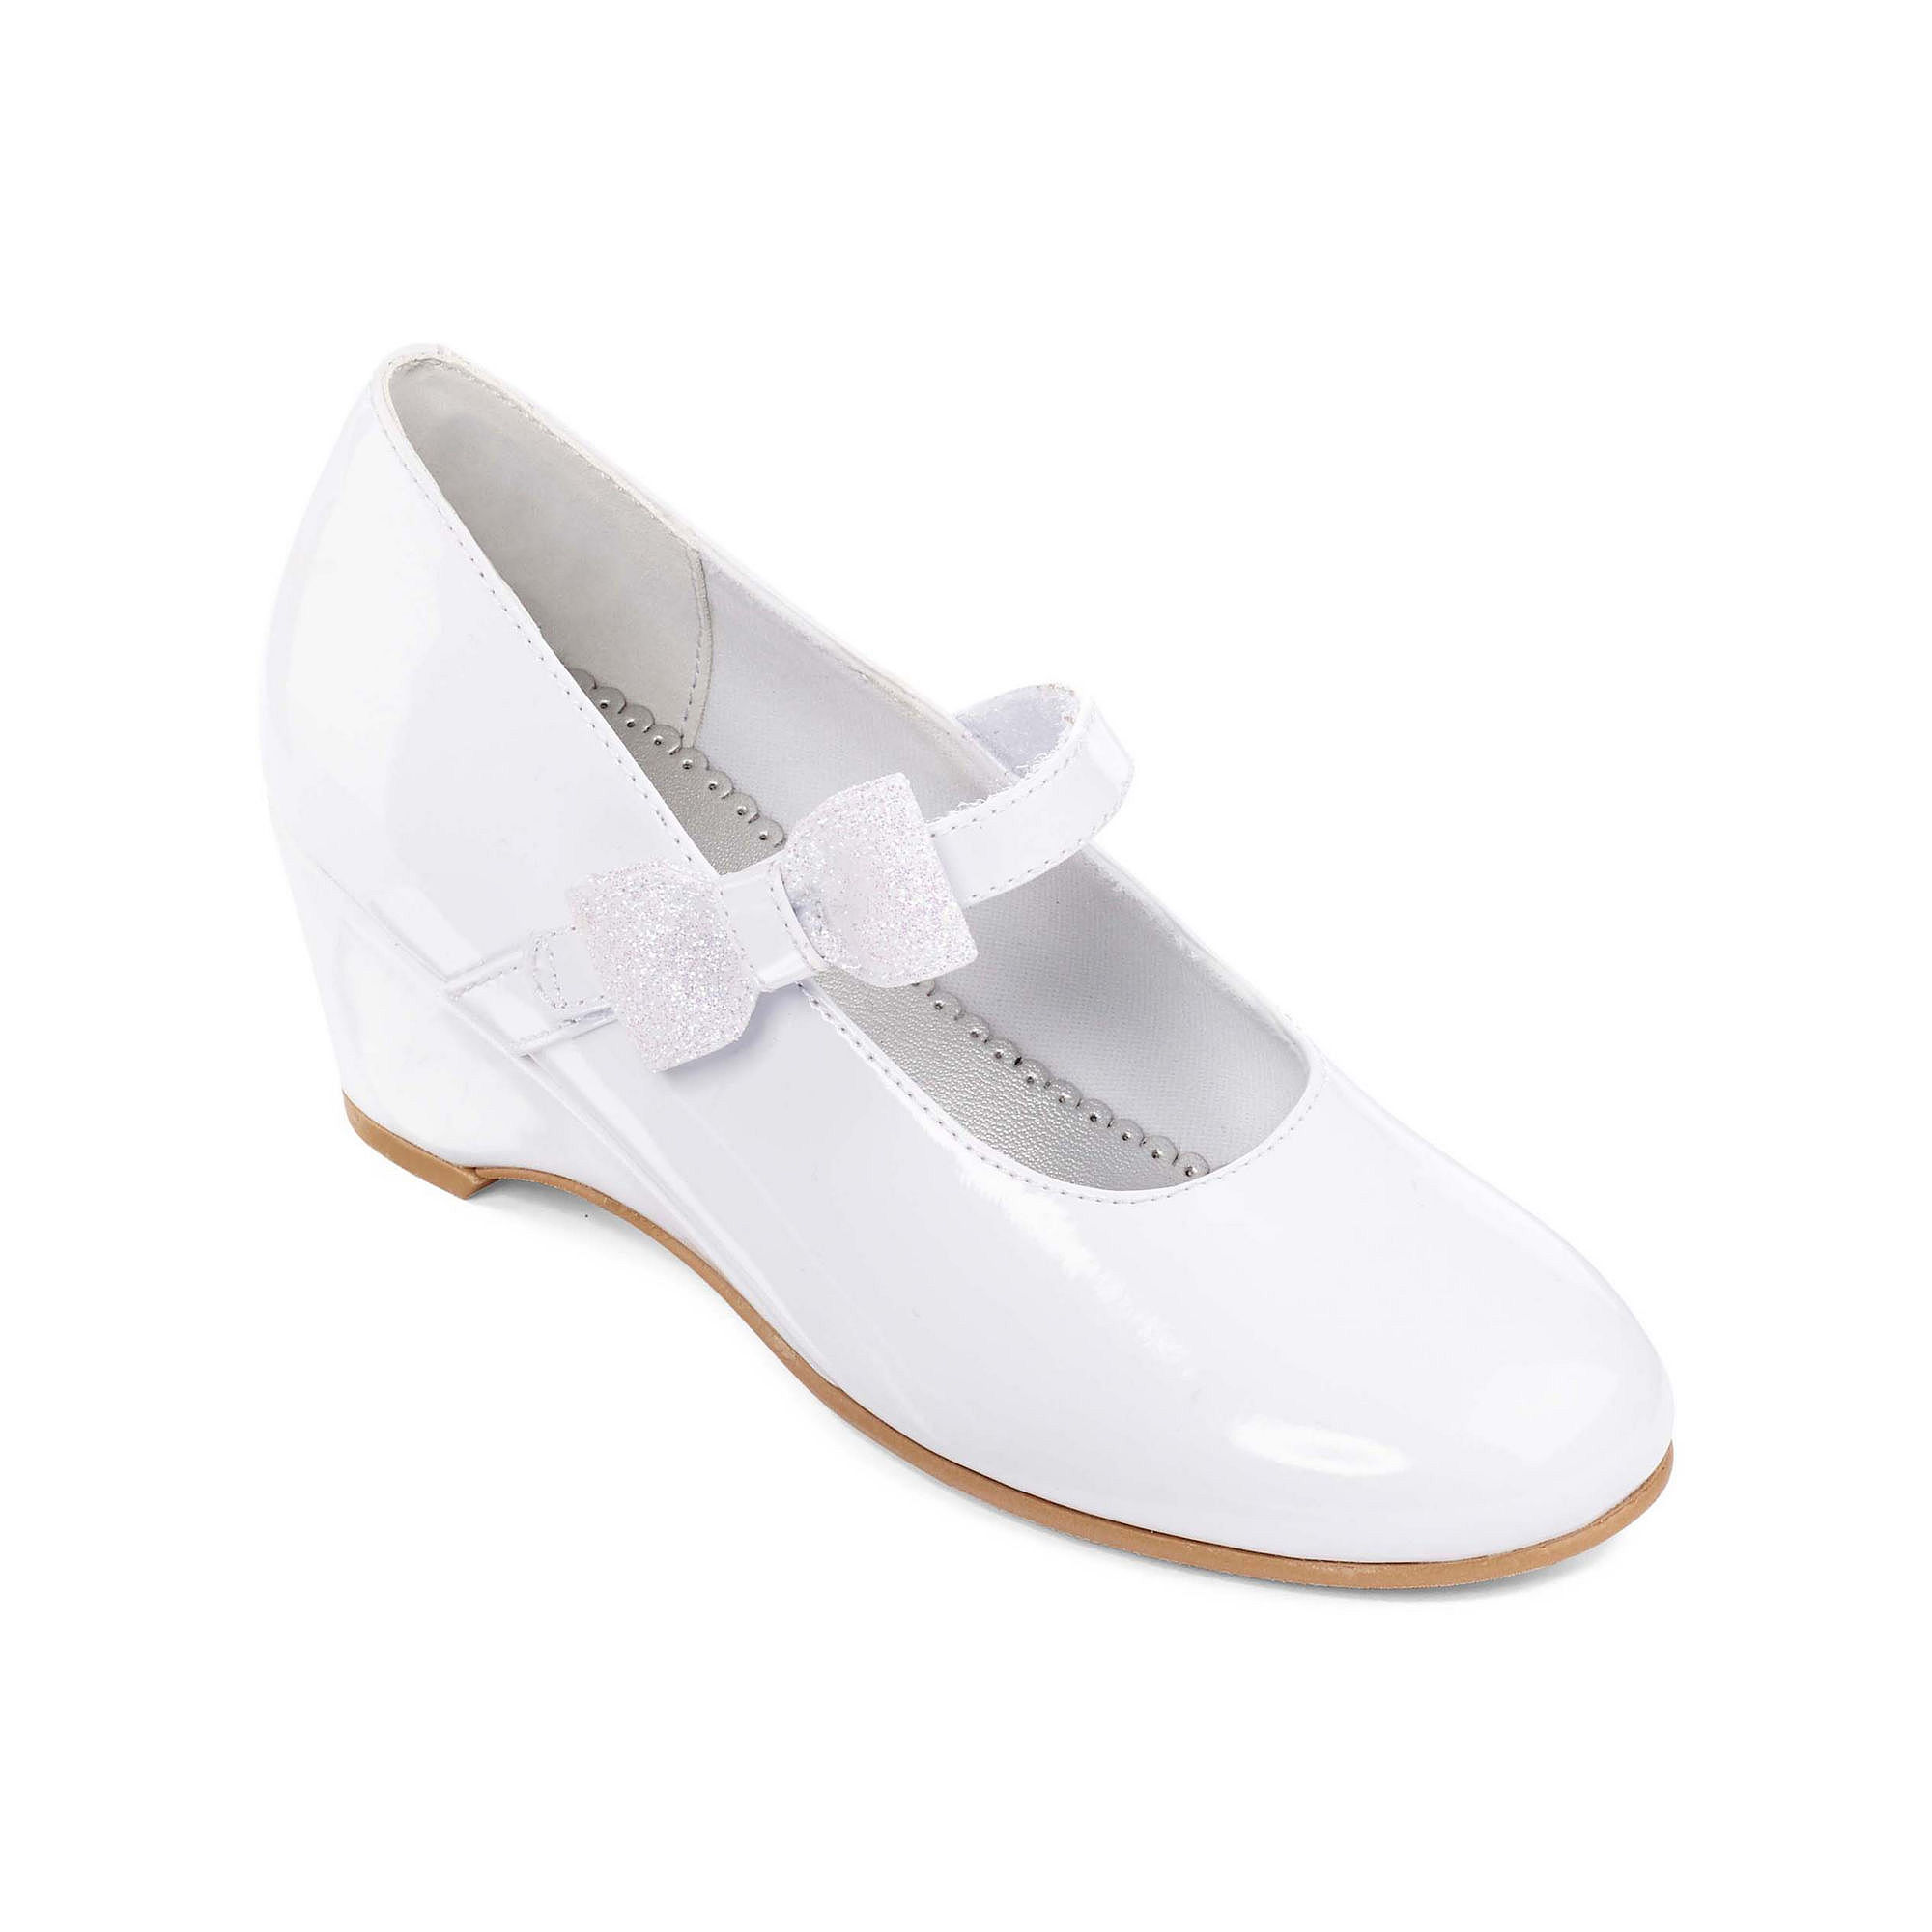 Christie & Jill Kaitlyn Girls Wedge Dress Shoes - Little Kids